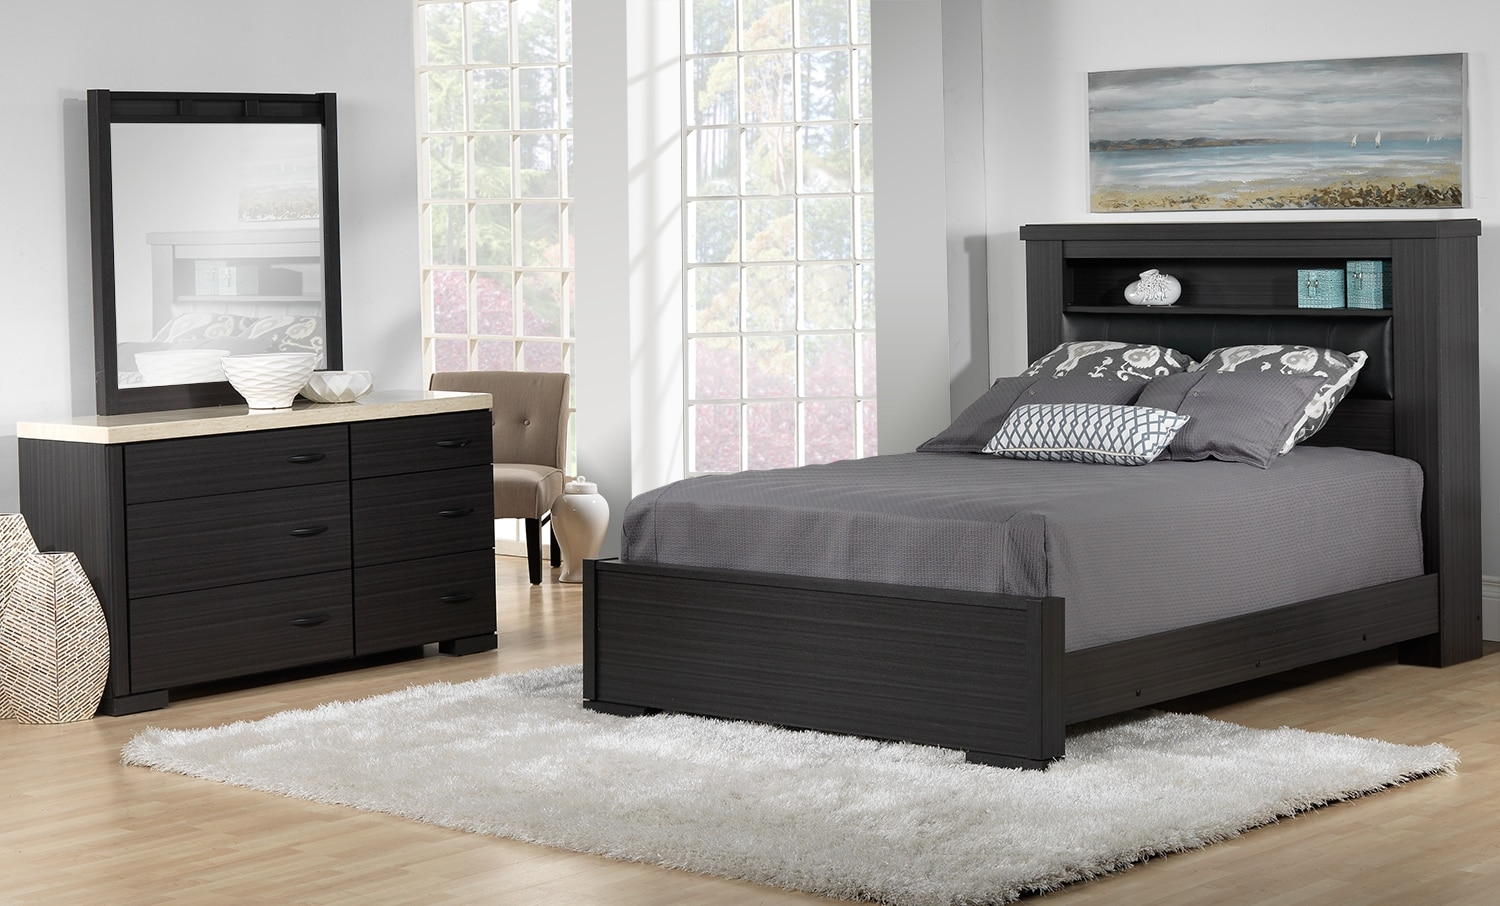 Bedroom Furniture - Santee 5-Piece King Bedroom Set - Charcoal & White